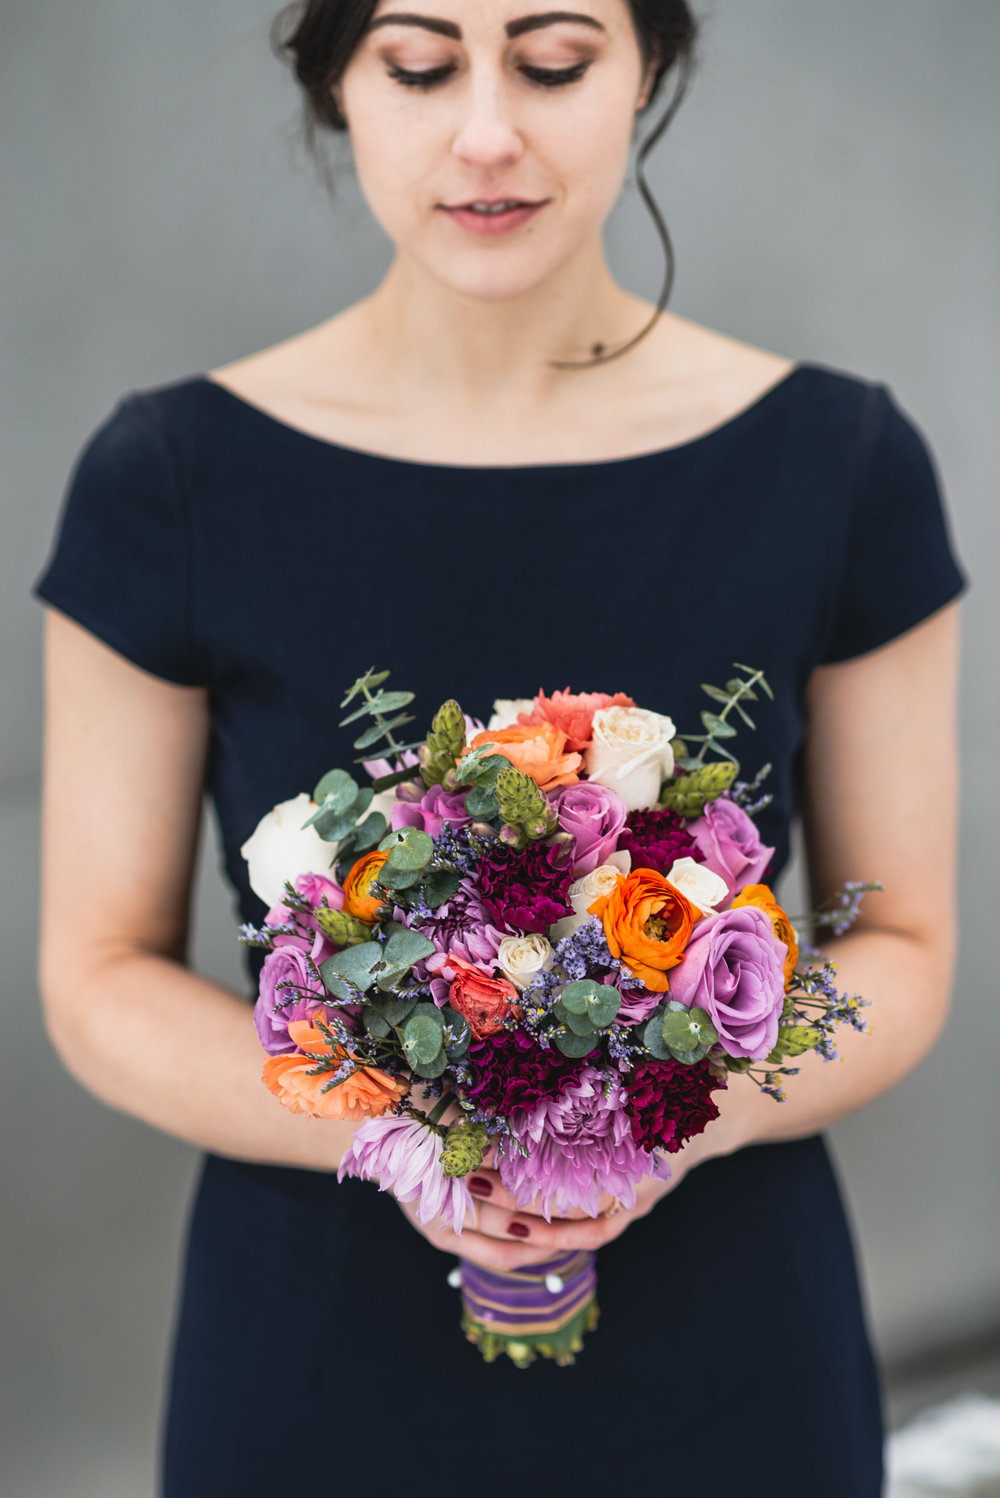 Bride holds bouquet of flowers